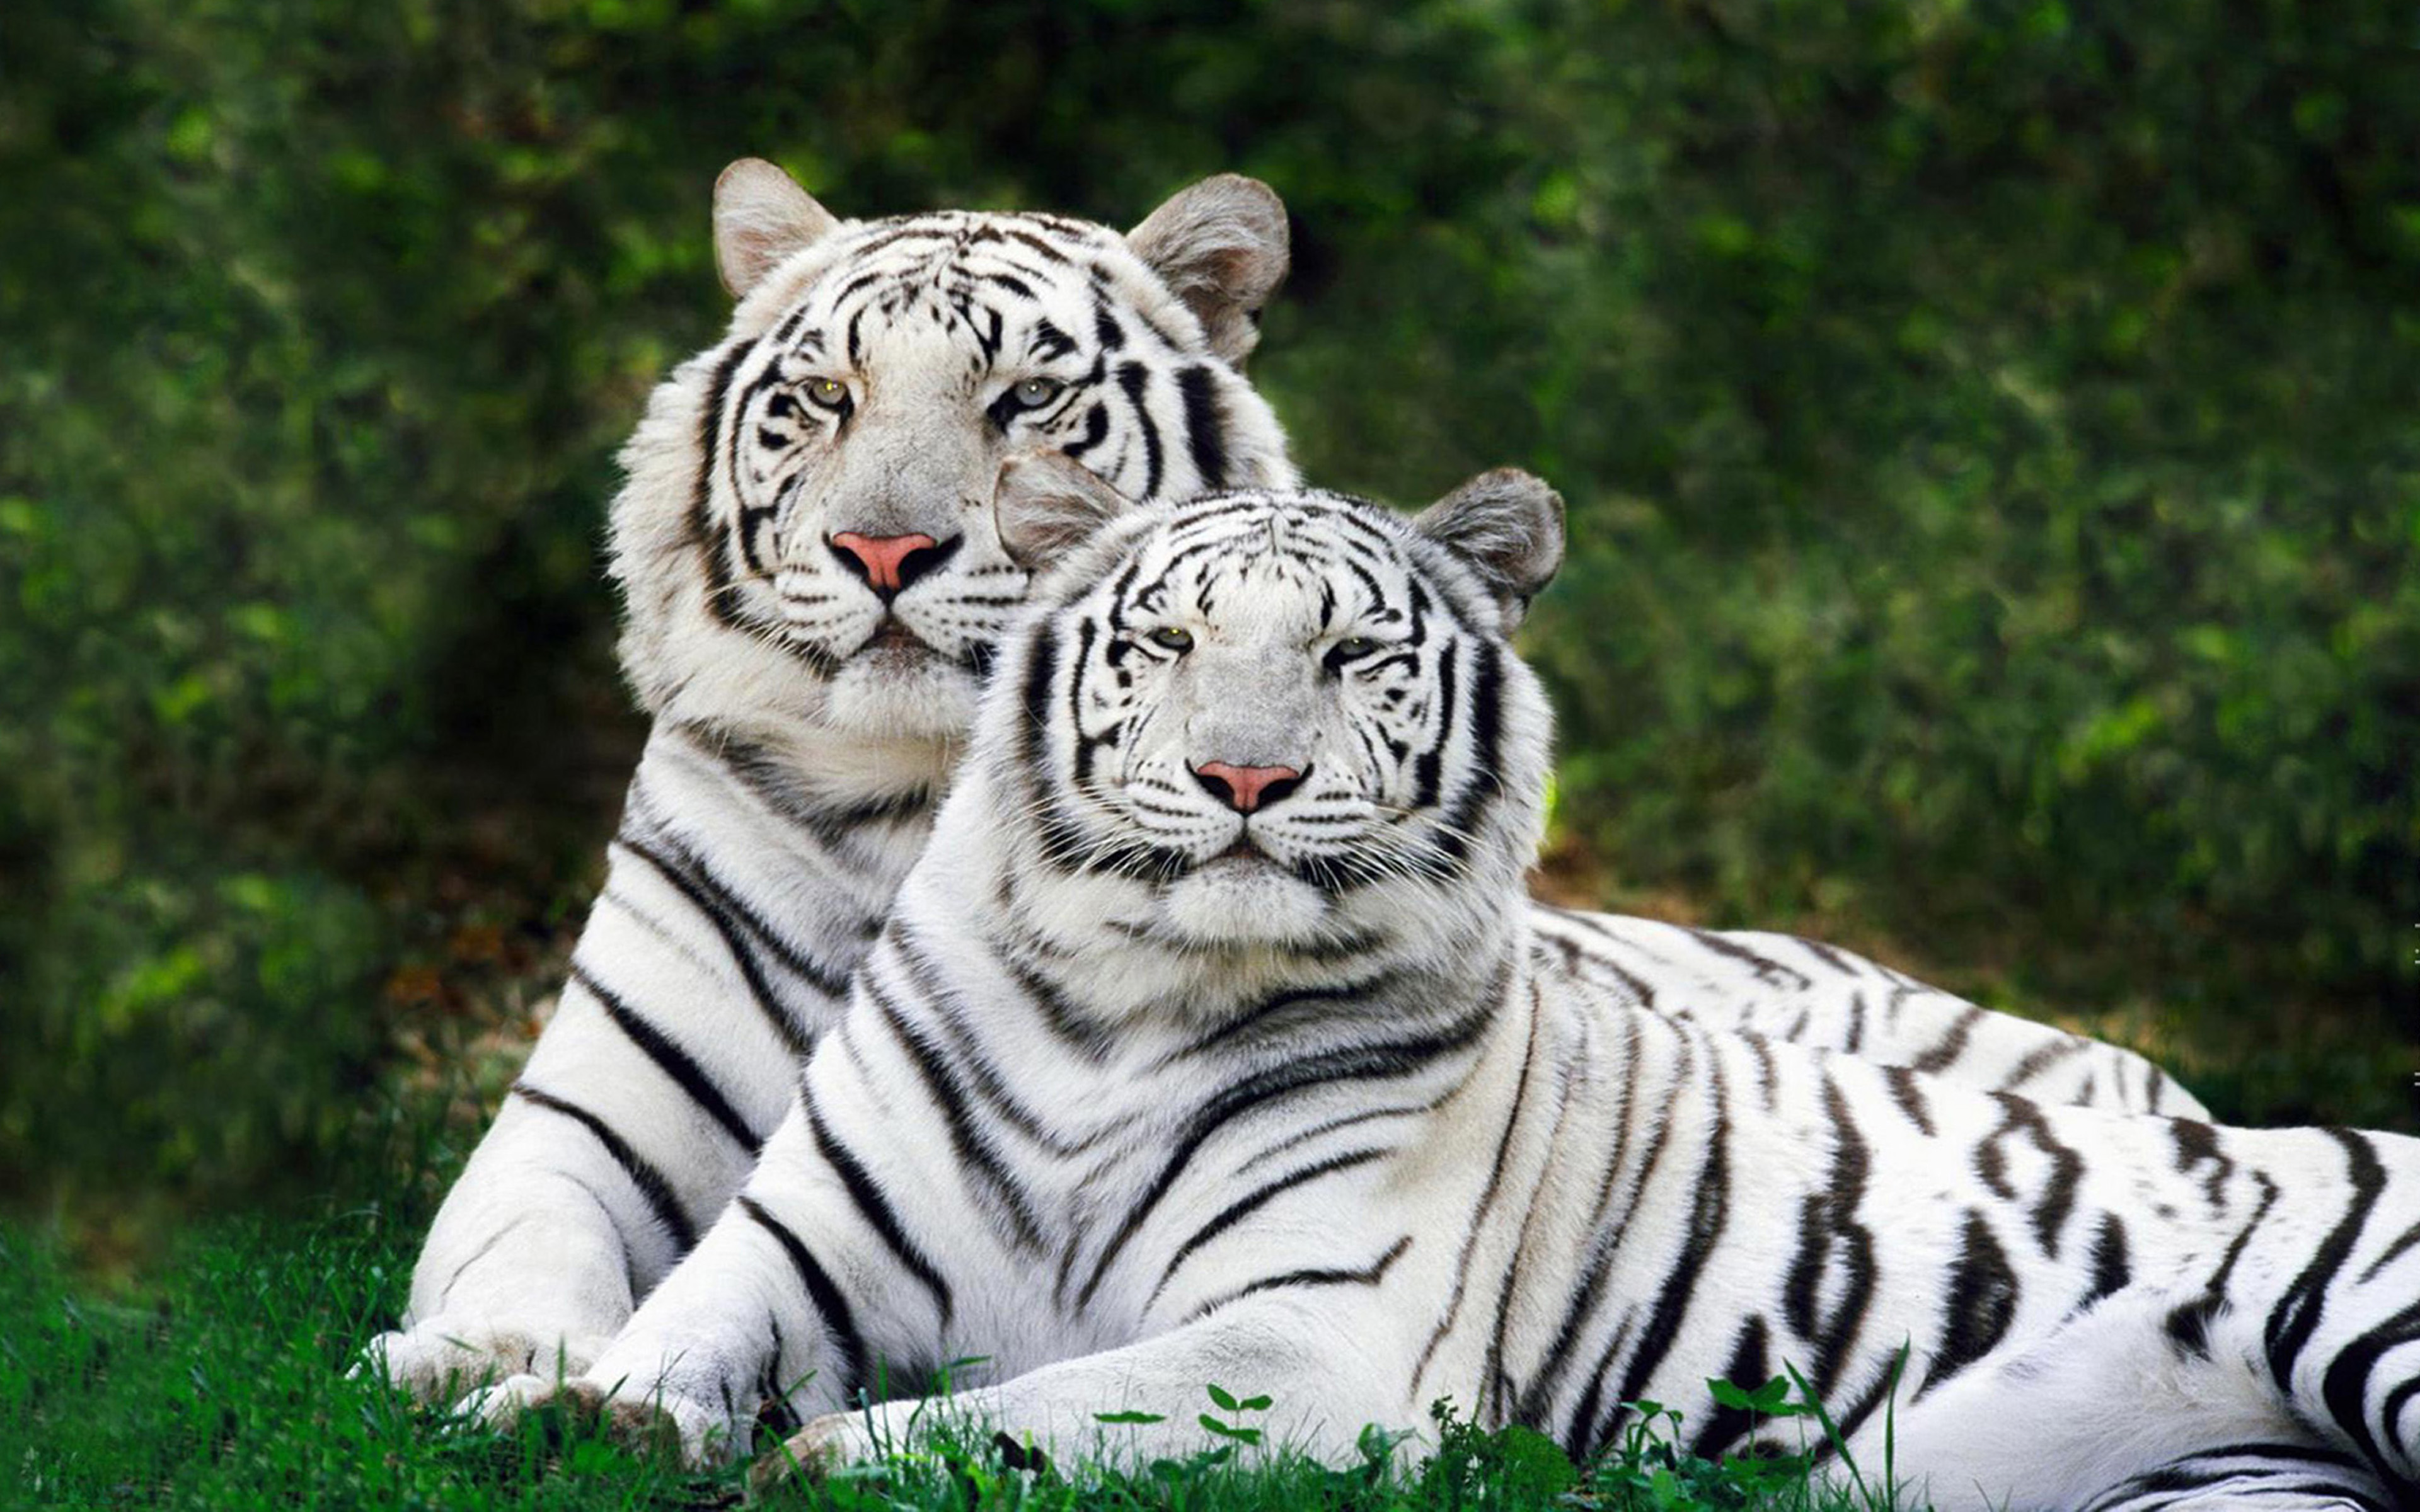 Hd Christmas Wallpapers 1080p Pair Of Tigers Wallpaper Hd Mobile Phone And Pc